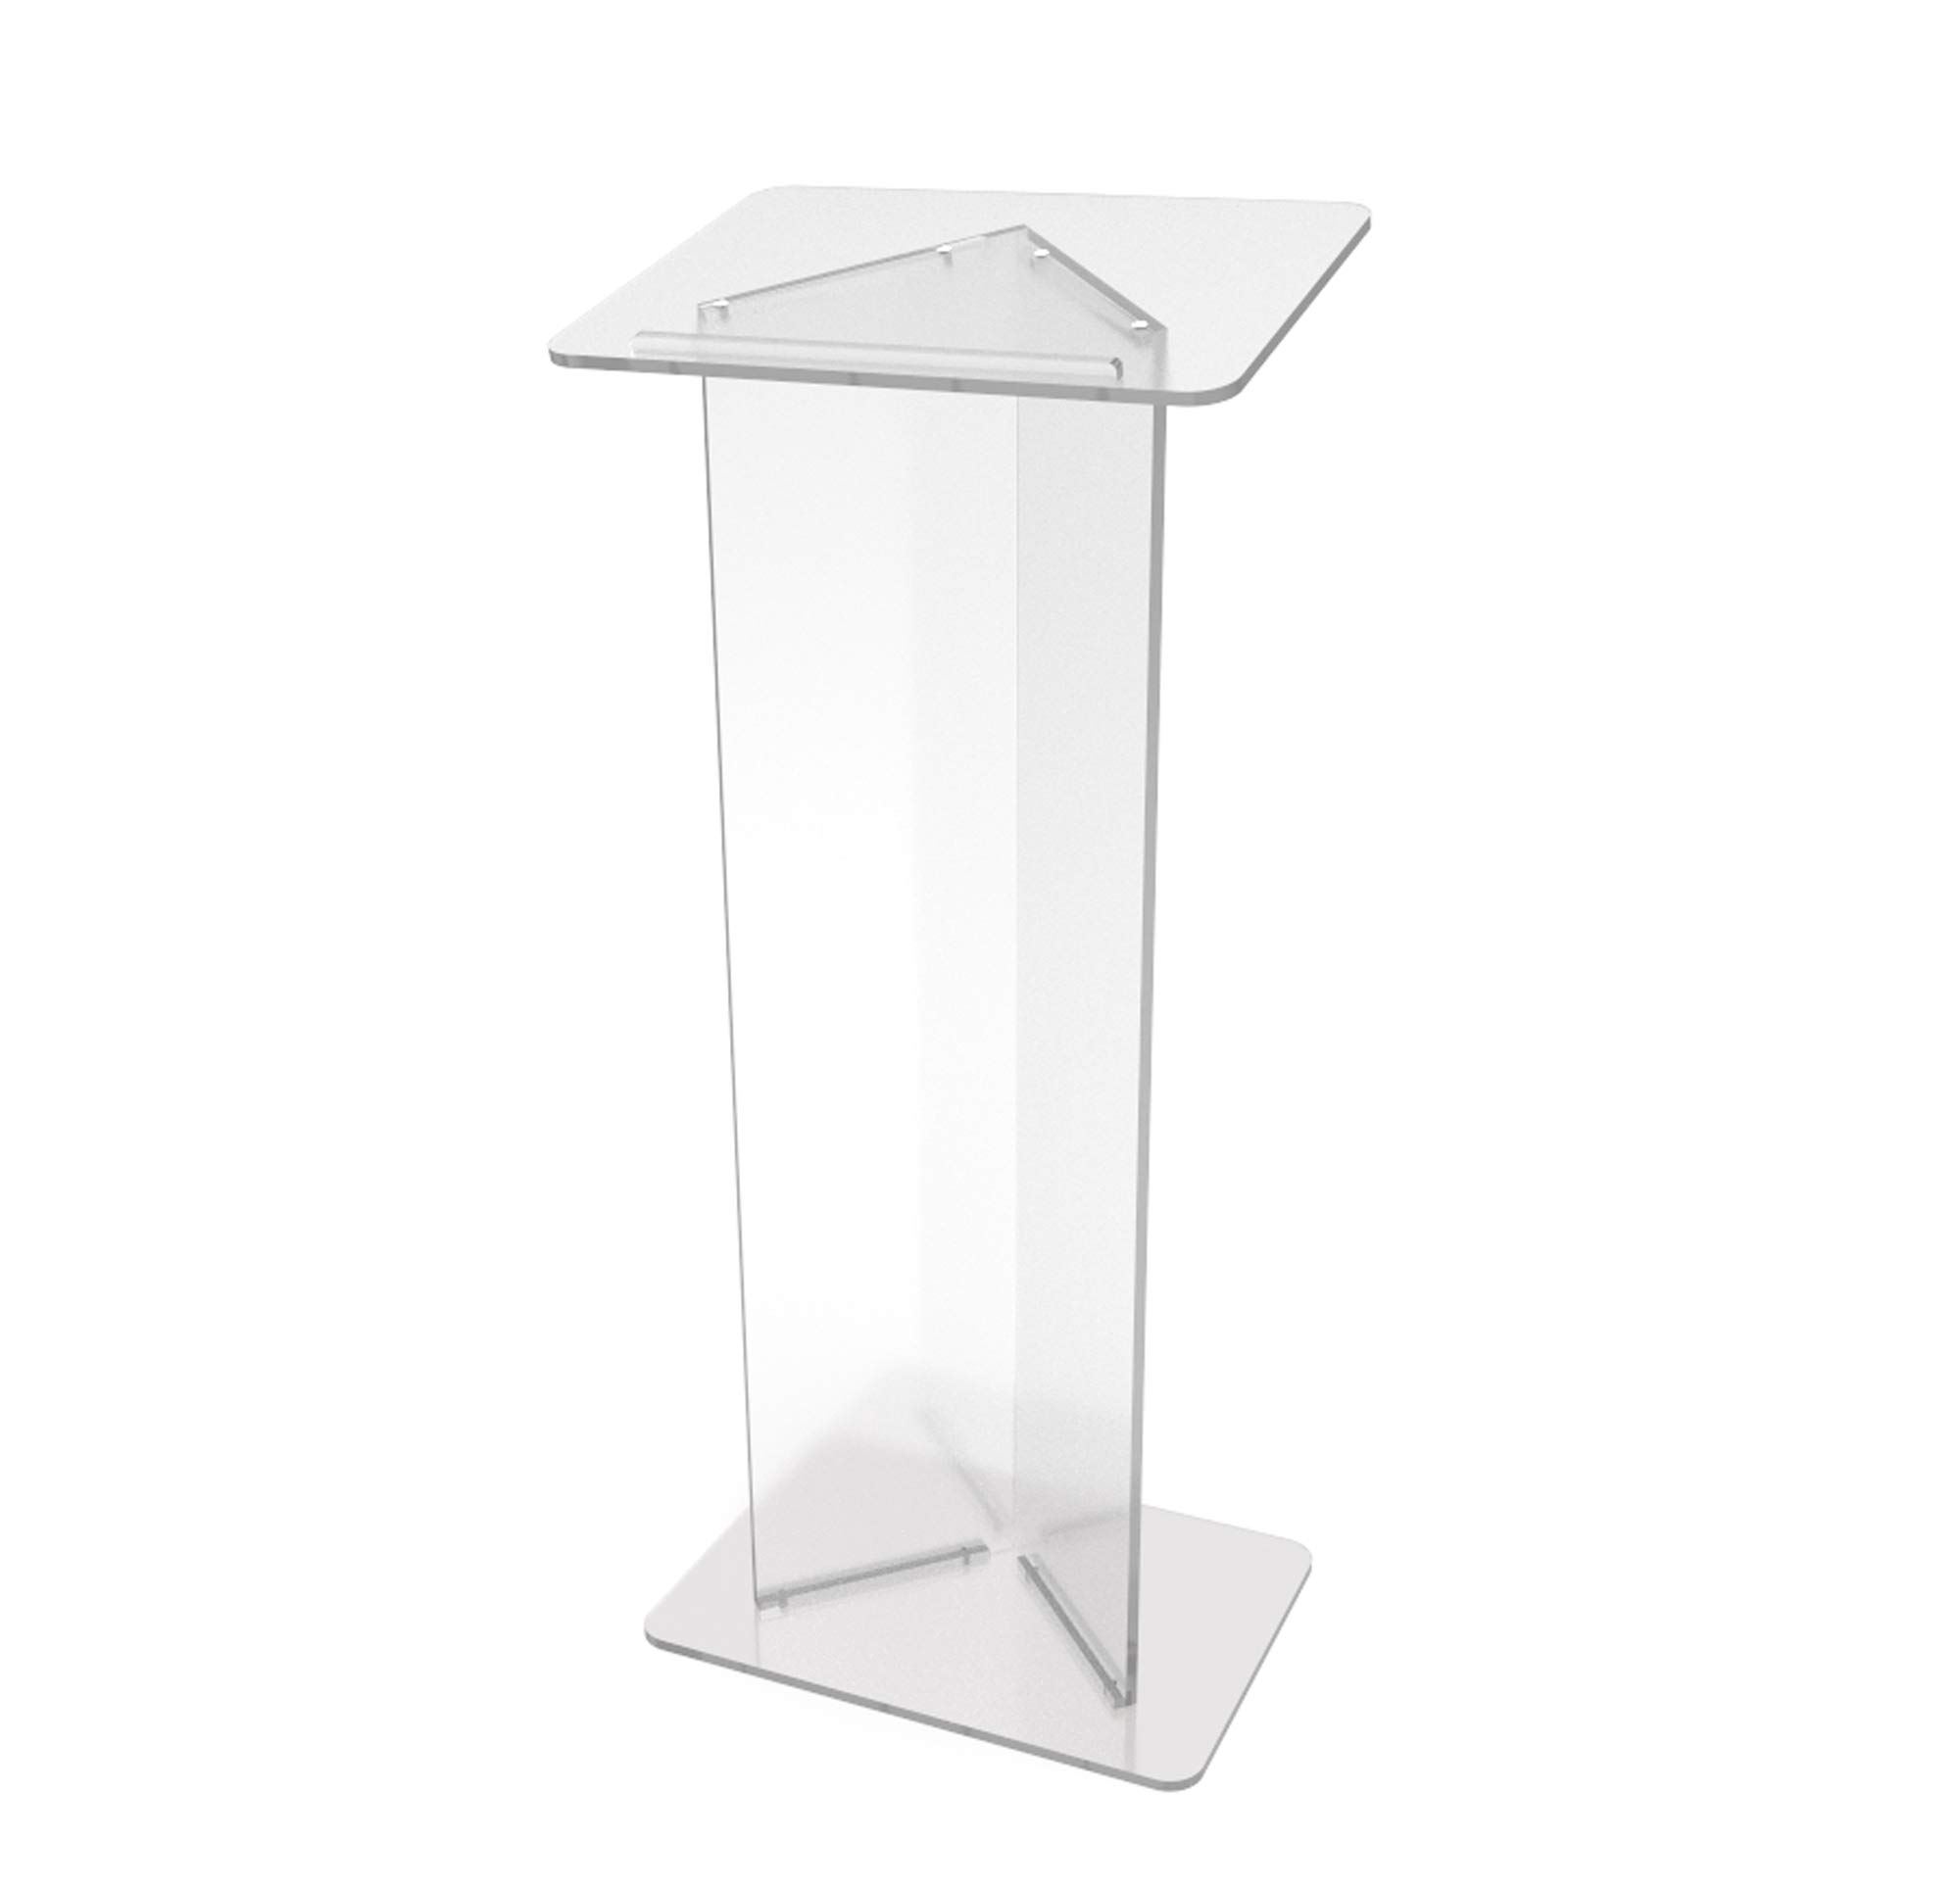 FixtureDisplays Podium Clear Ghost Acrylic Lectern or Pulpit - 15240 Easy Assembly Required15240 15240